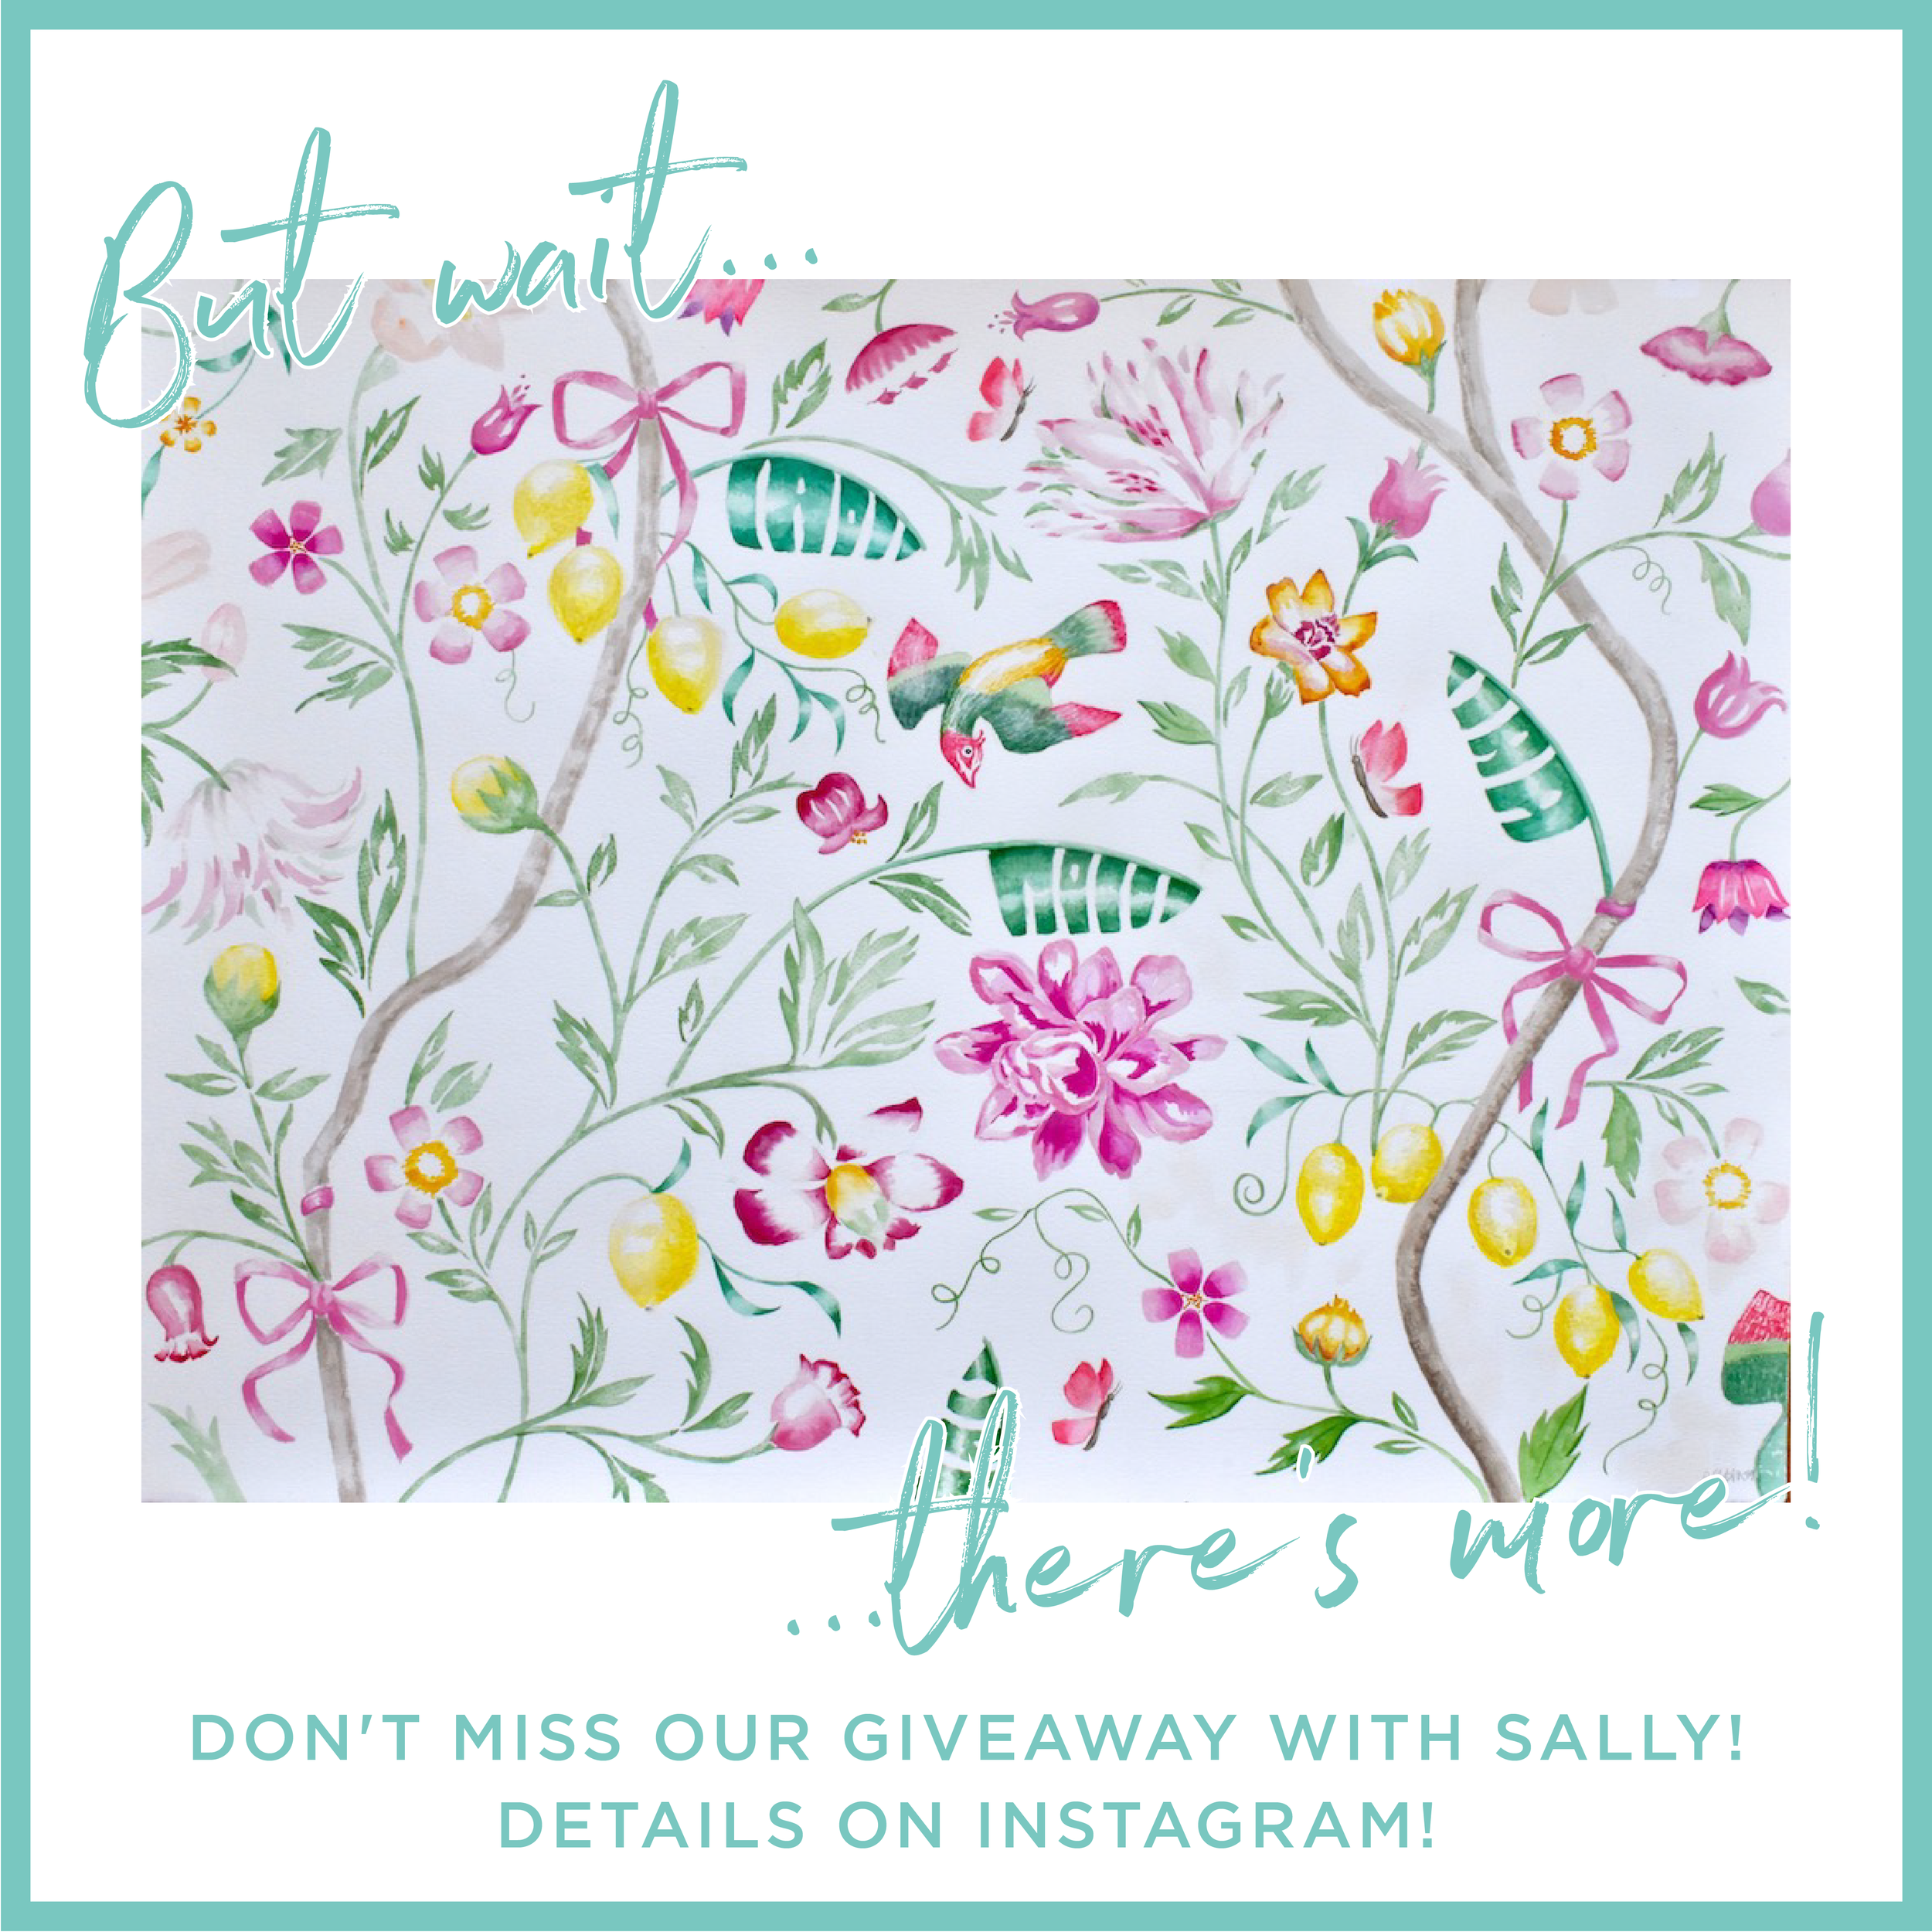 Sally+India_Giveaway-01.png